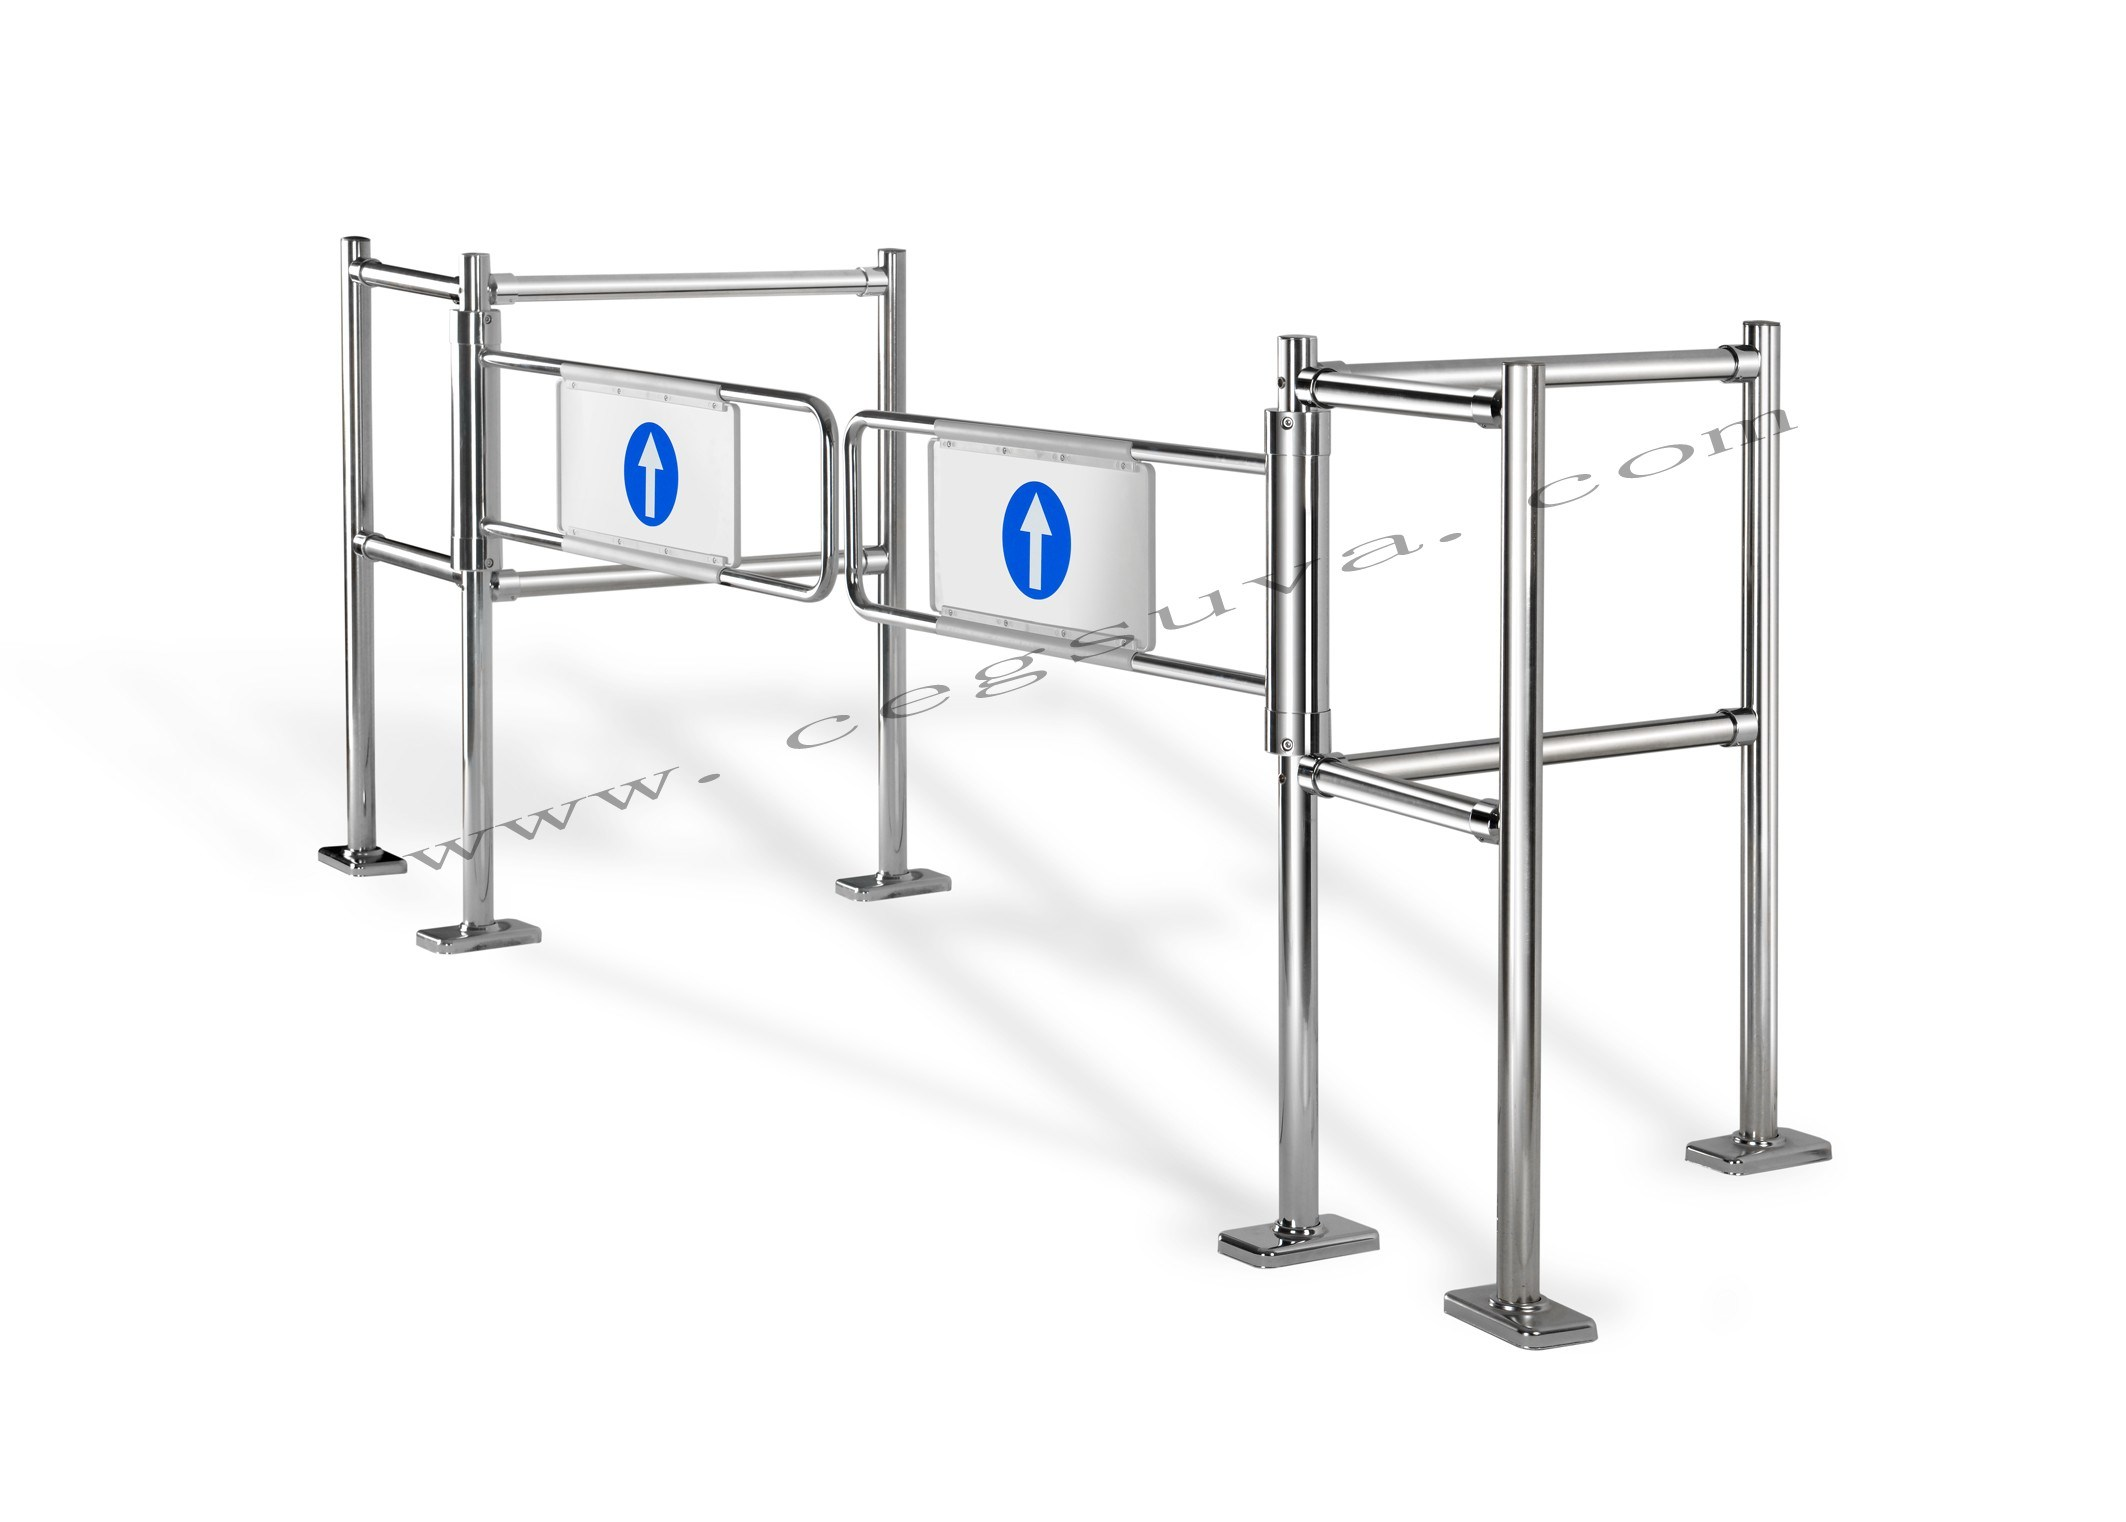 Dual Mechanical with Barrier, Swing Gate, Supermarket Gate, Entrance Gate